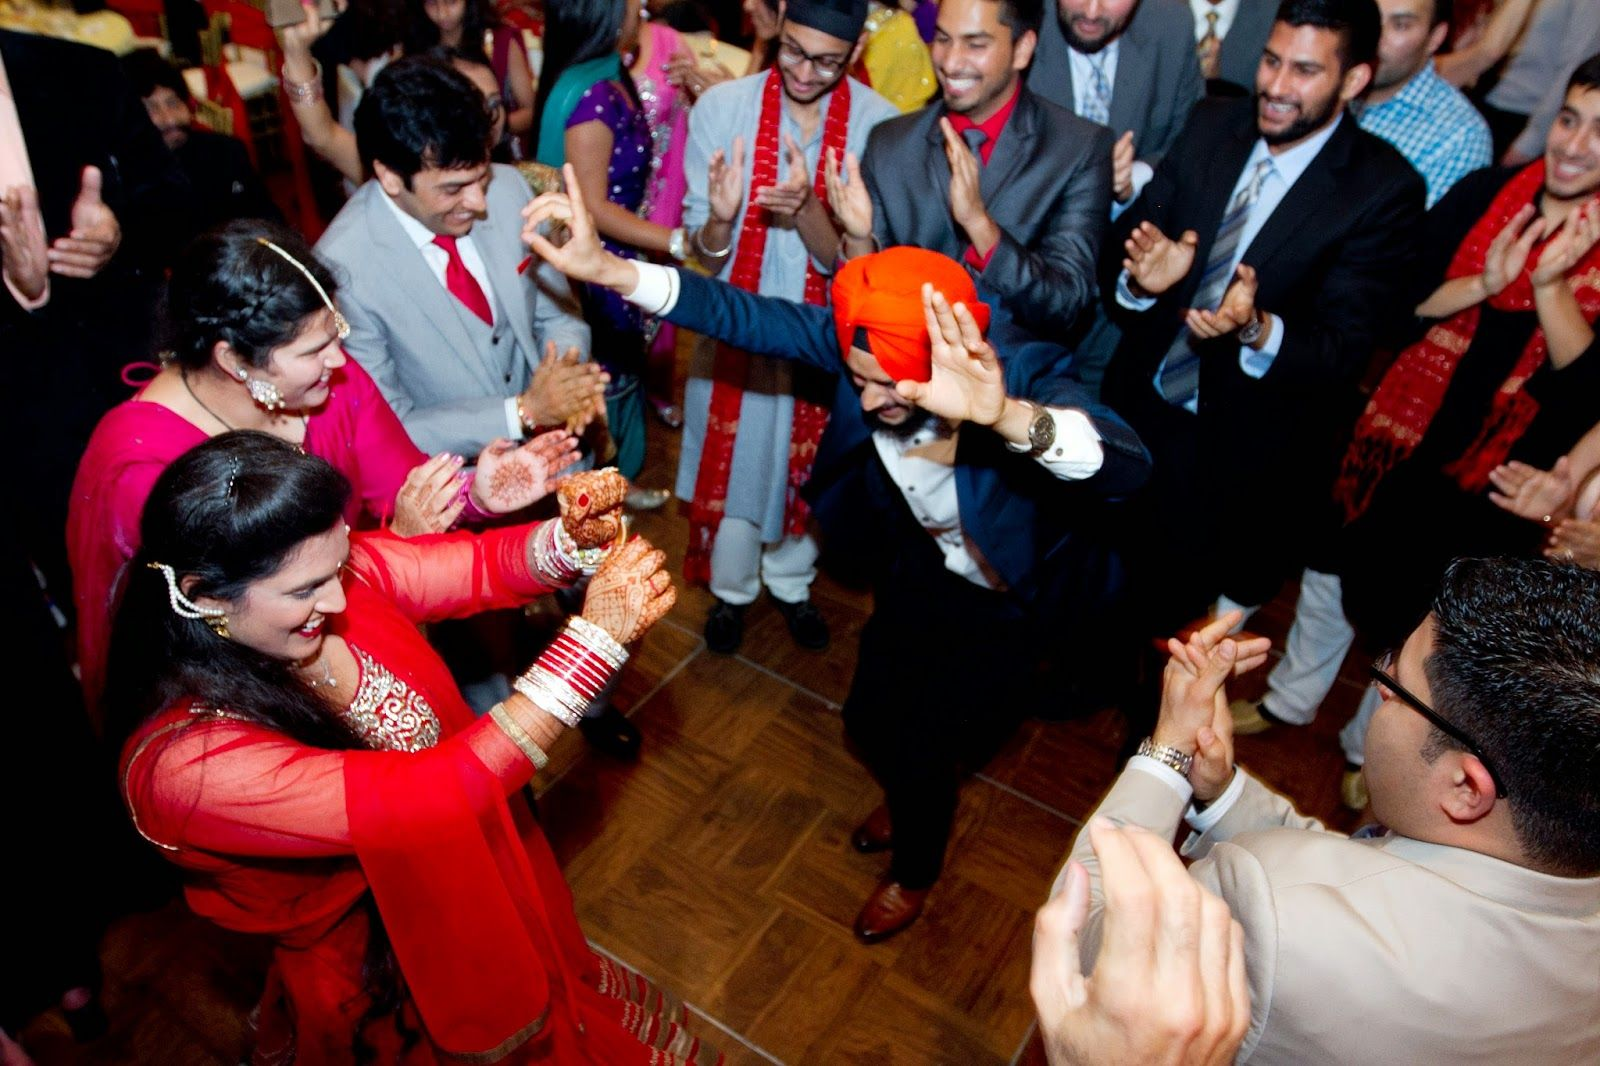 5 Crazy Indian Wedding Dance Check Videos F4feeds